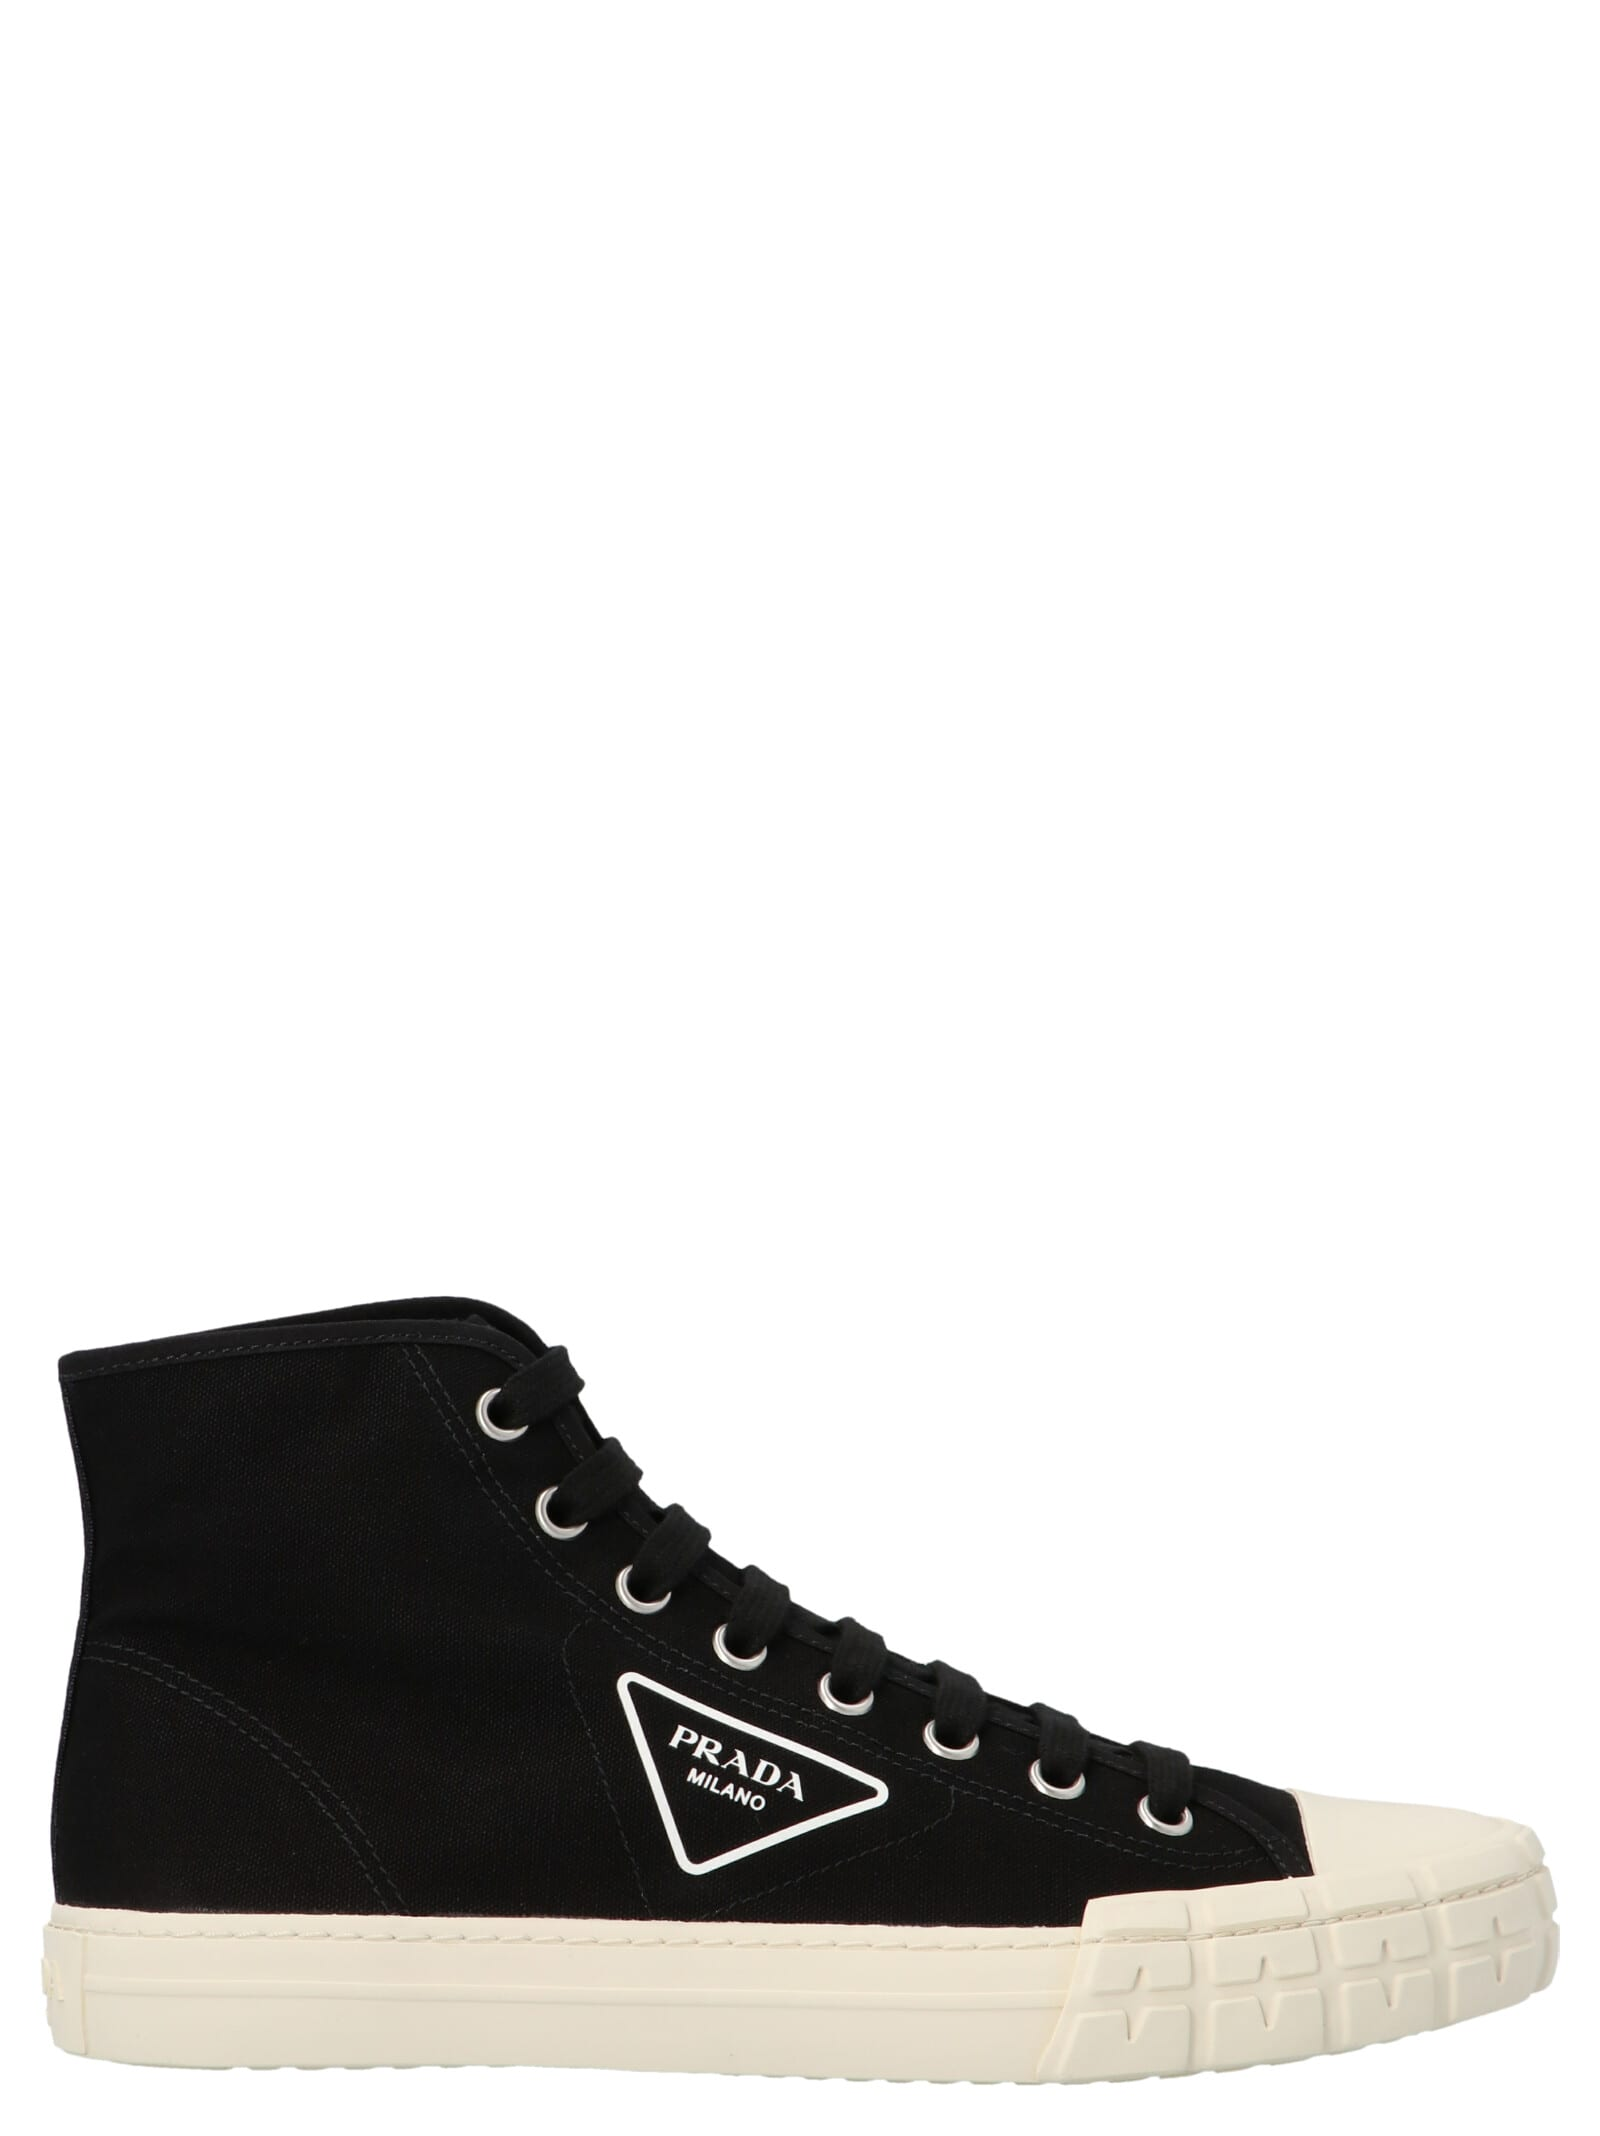 PRADA Canvases HIGH WHEEL SHOES